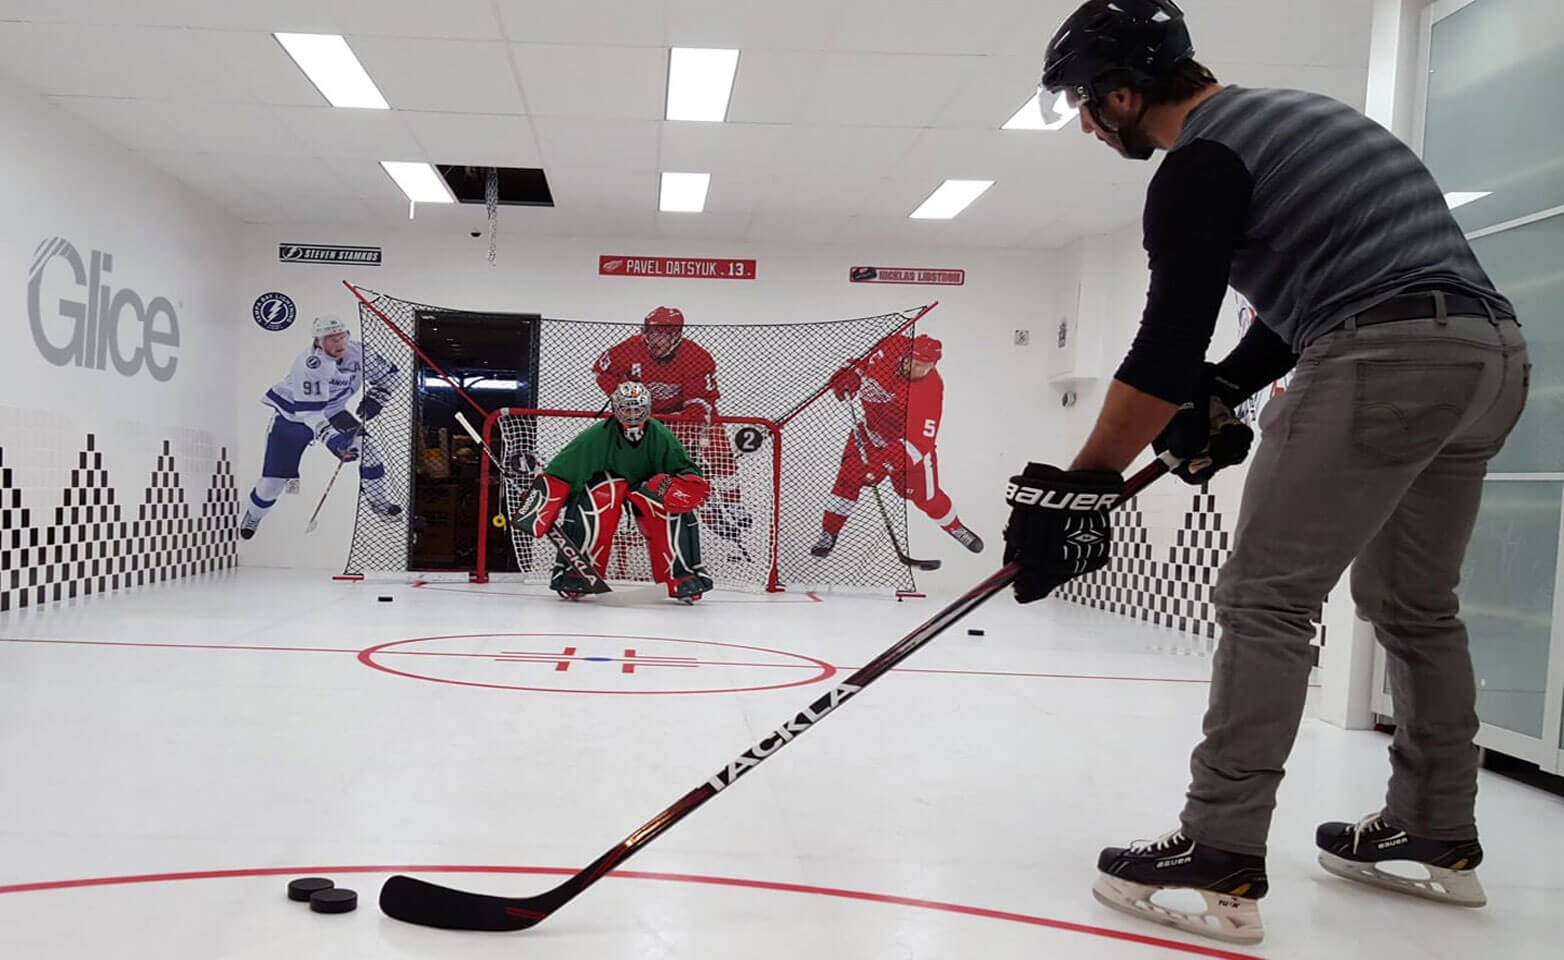 Hockey practice in synthetic ice rink with embedded hockey lines